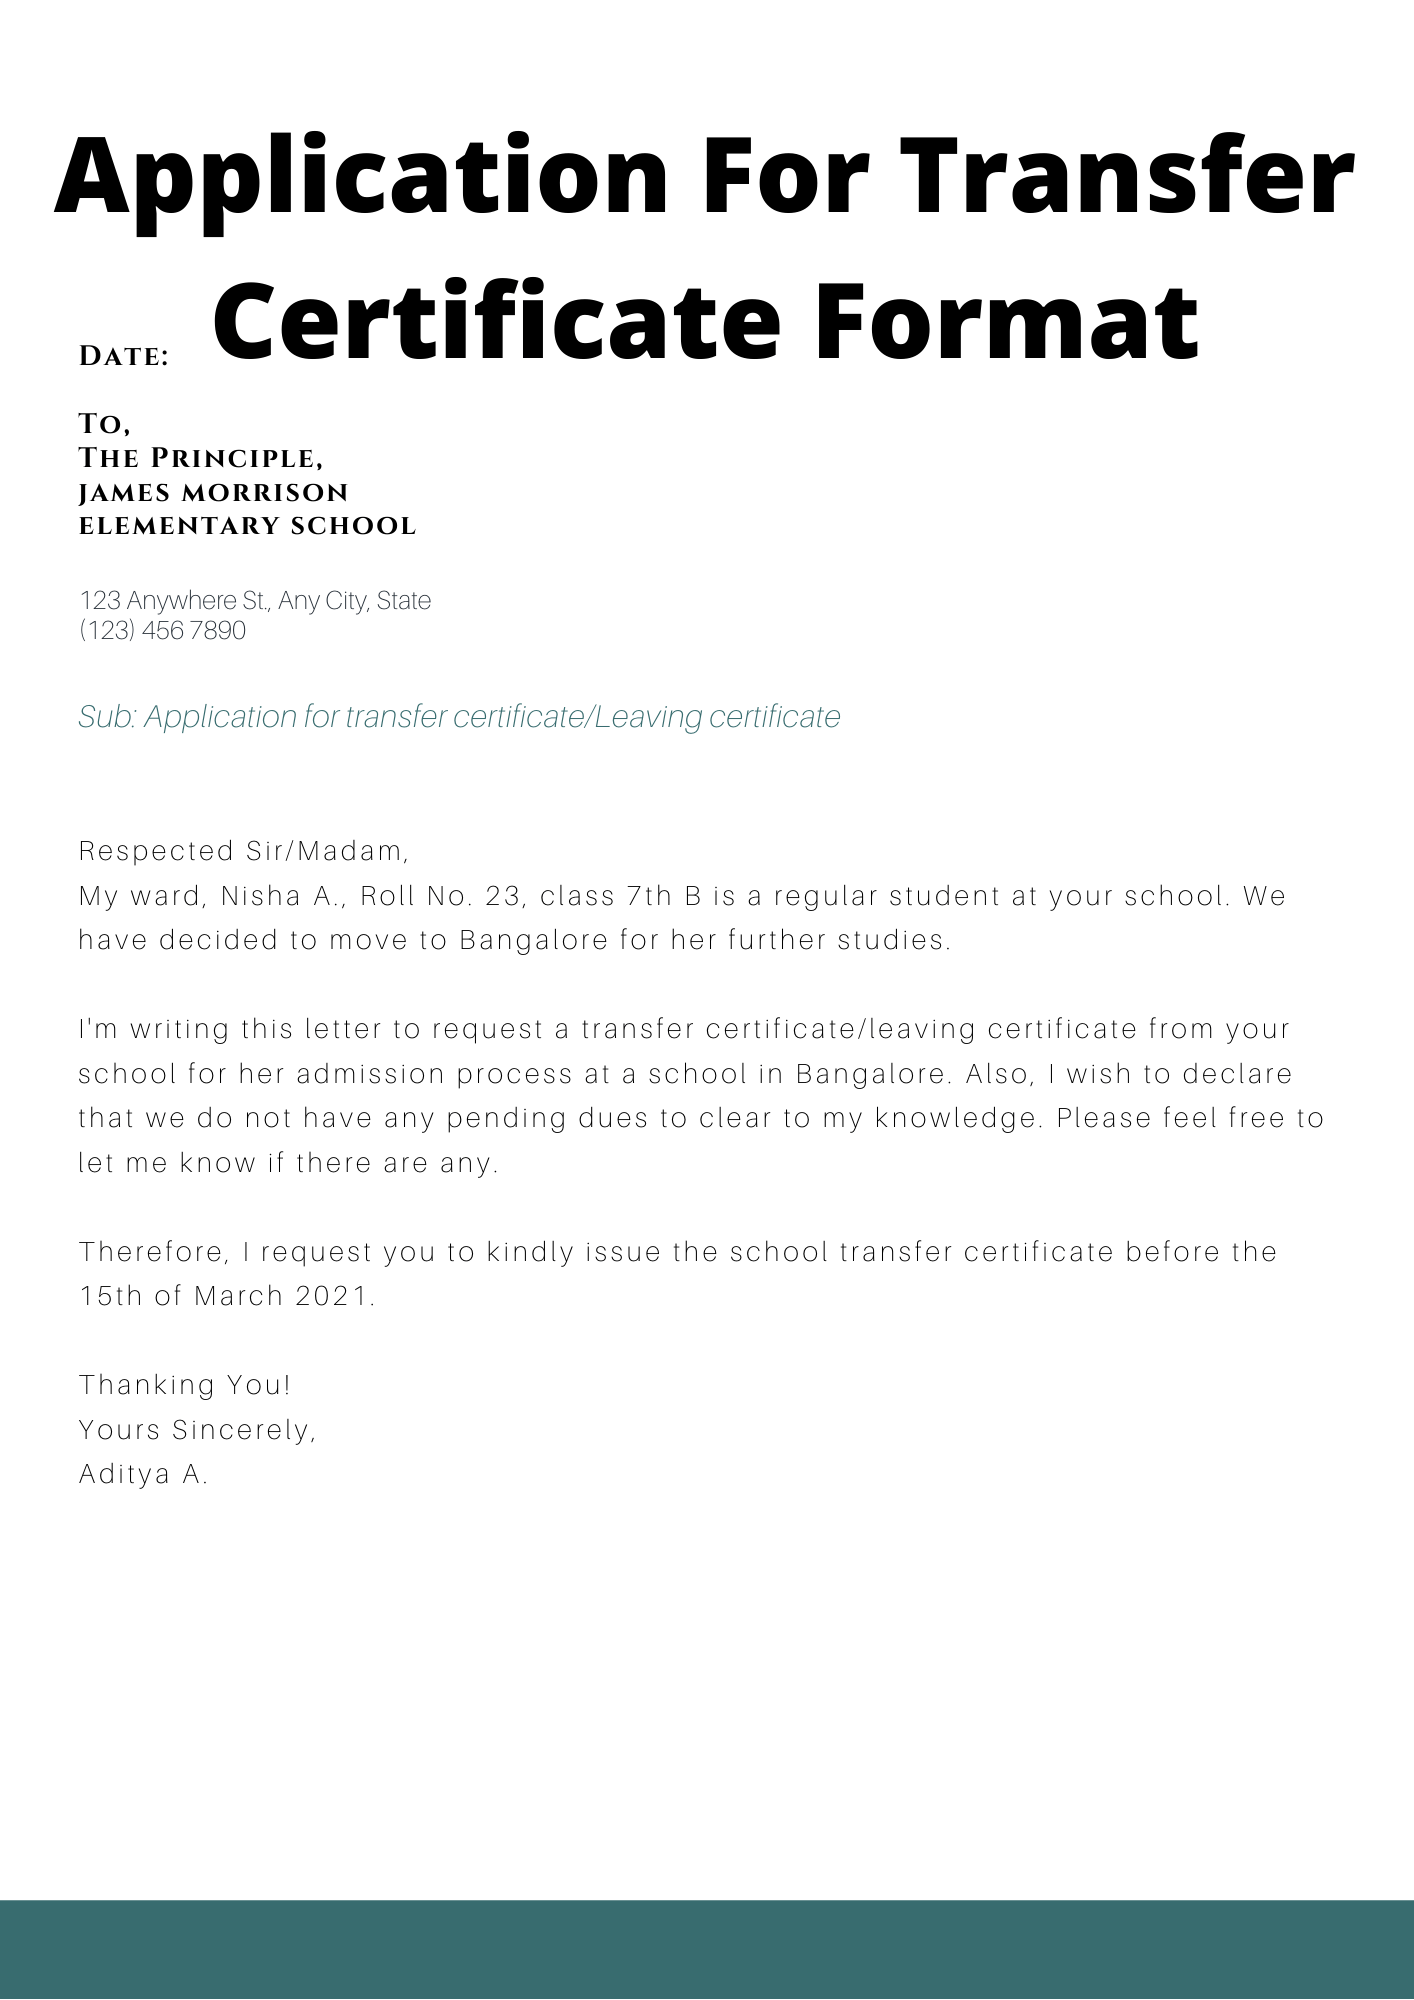 Application For Transfer Certificate From School